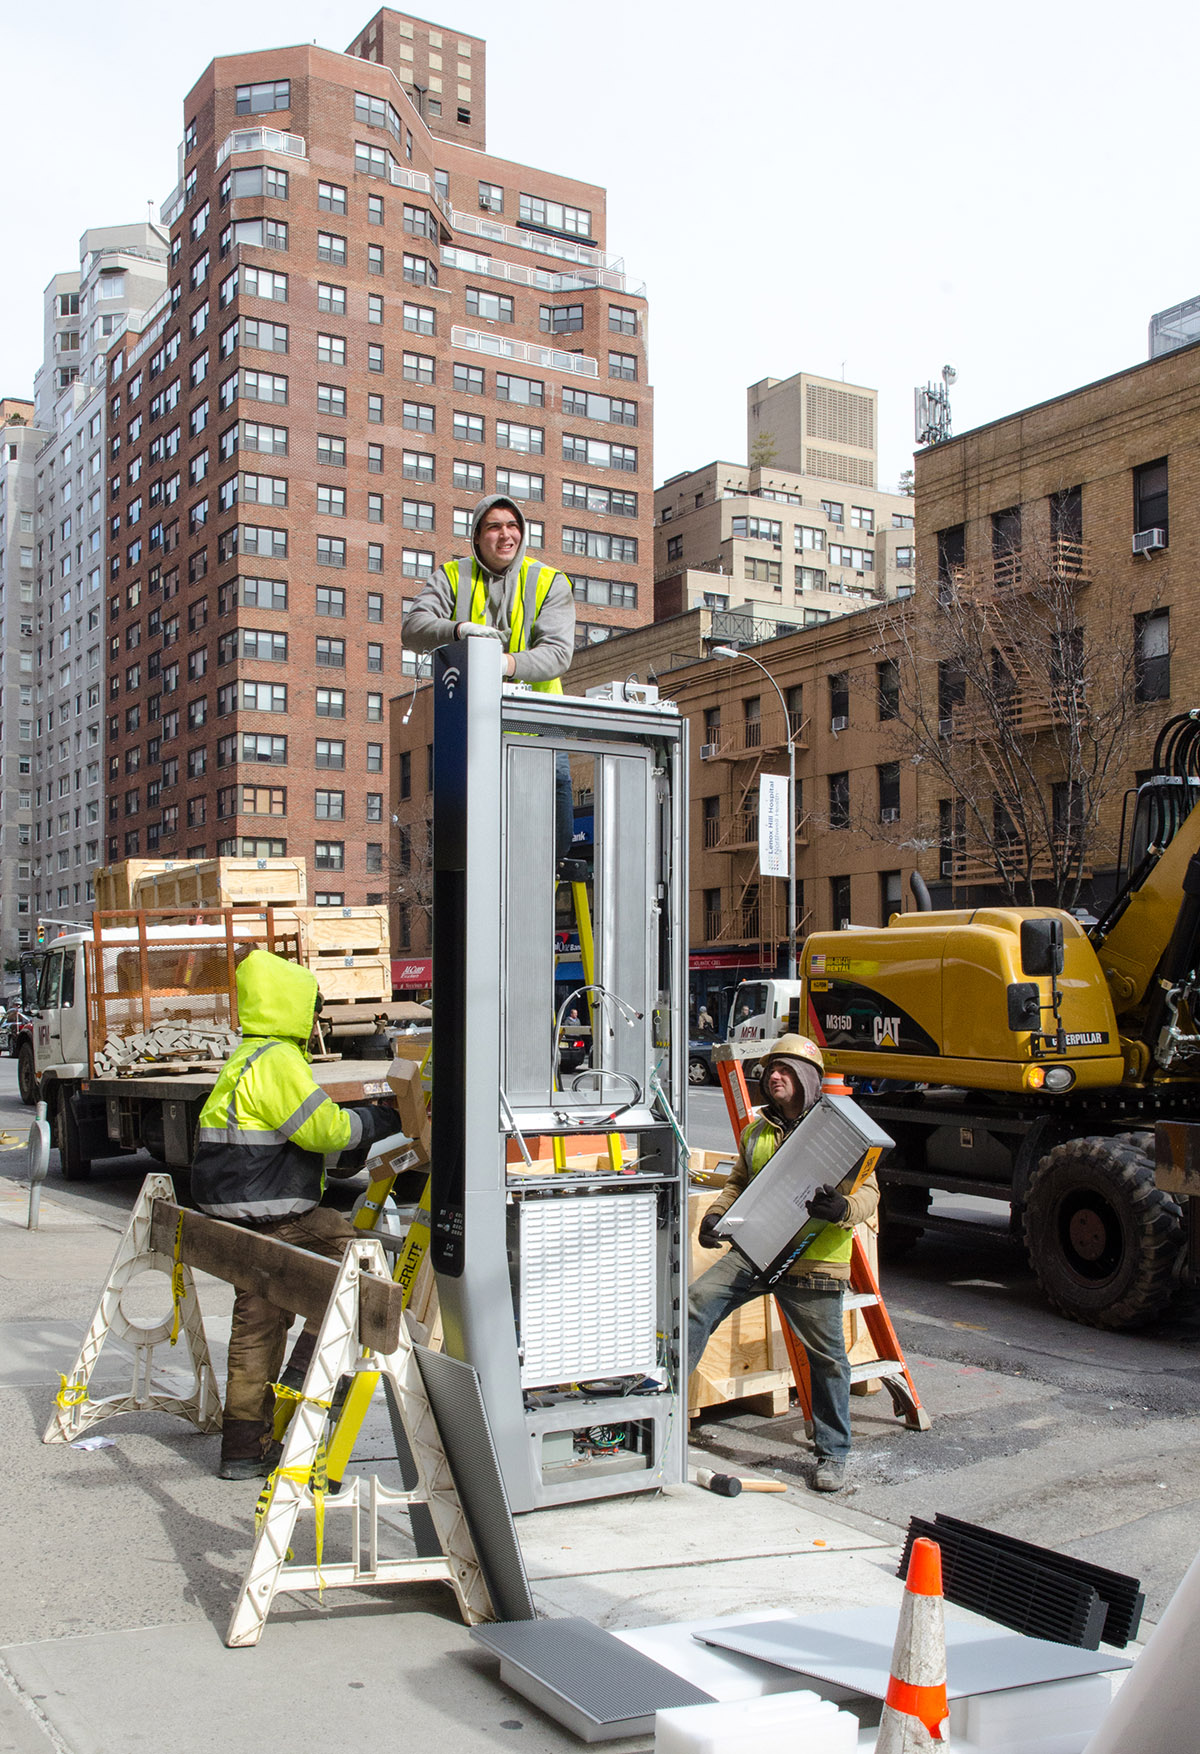 Phone booth of the 21st century. LinkNYC going in on the Upper East Side, NYC.